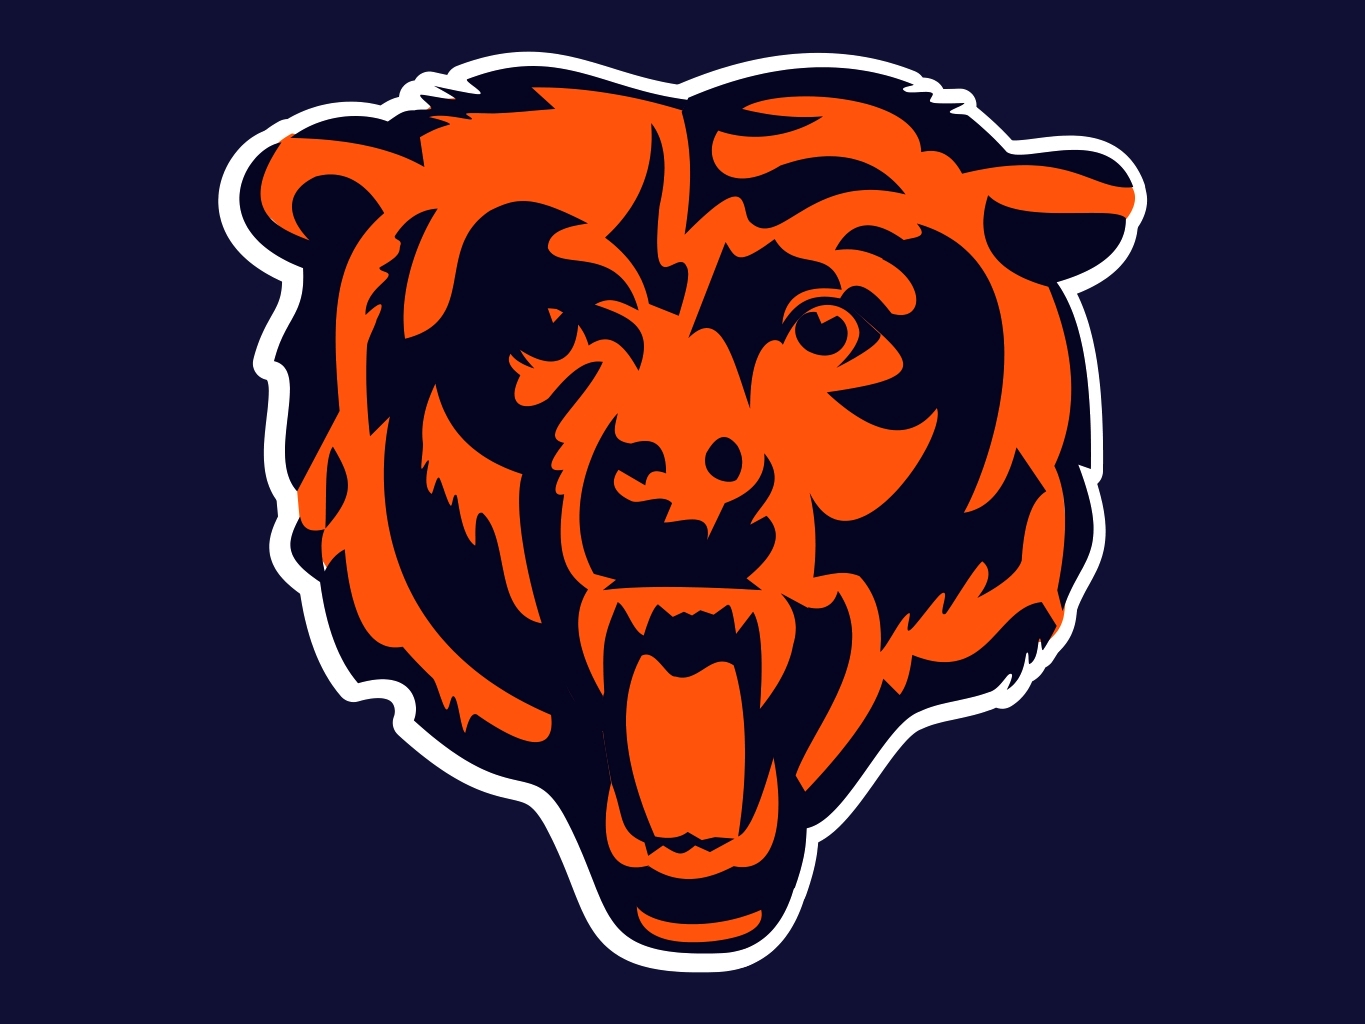 Chicago Bears Hd Wallpaper Free Chicago Bears Logo Download Free Clip Art Free Clip